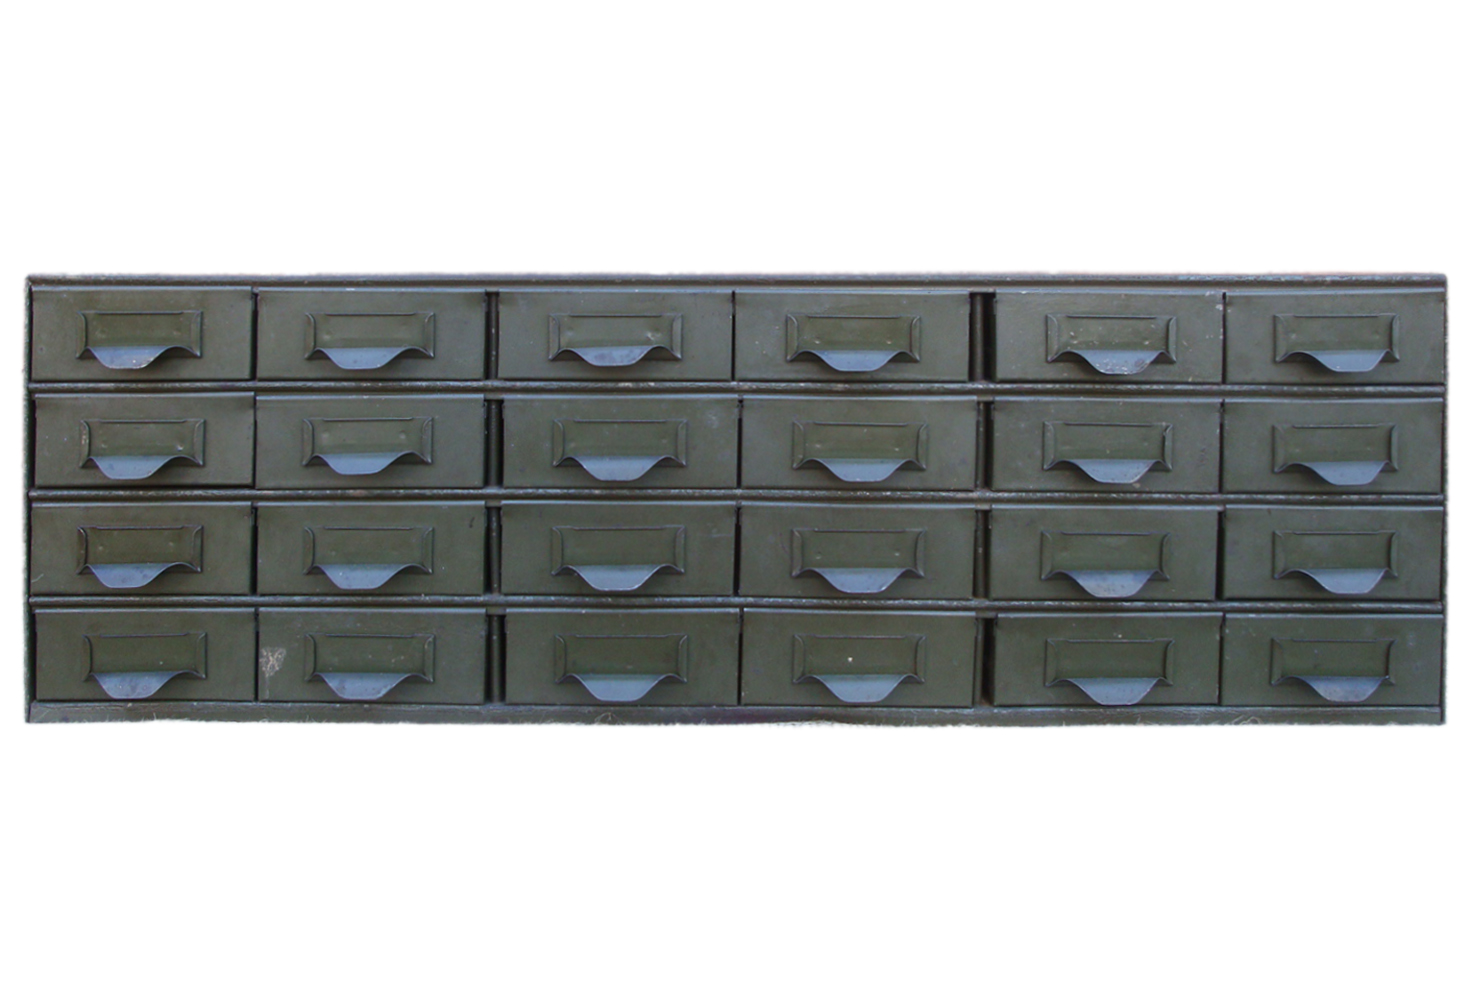 24 Drawer Metal Industrial Steel Storage File Cabinet  : 24 drawer metal industrial steel storage file cabinet5 from www.omerohome.com size 1471 x 1000 jpeg 444kB